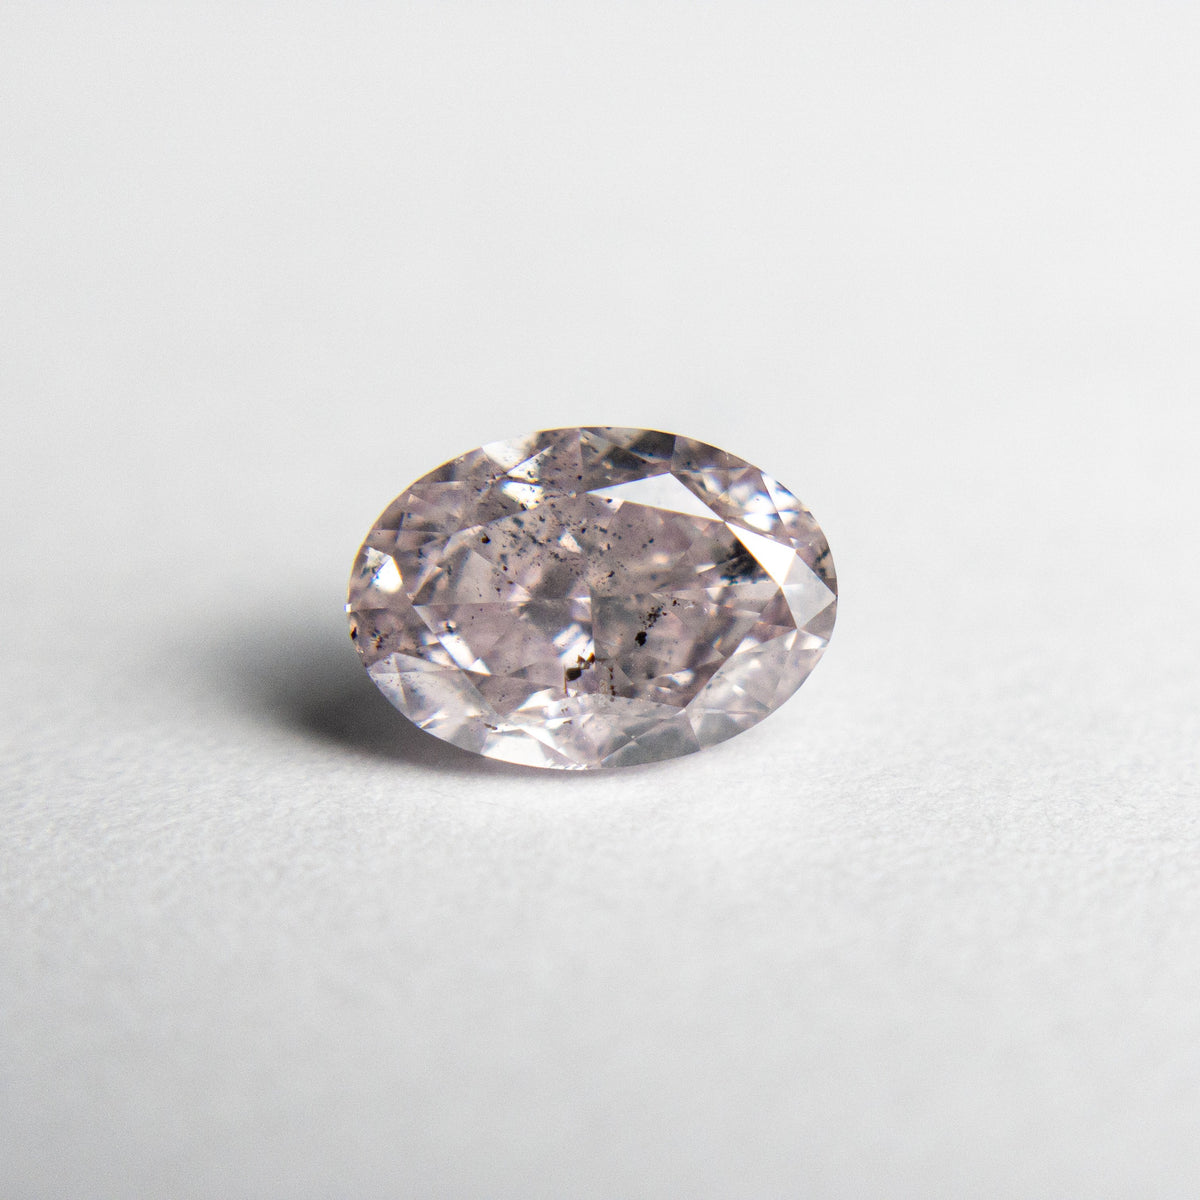 1.09ct 7.45x5.22x3.42mm Argyle GIA I1 Fancy Pink Purple Oval Brilliant 18557-01